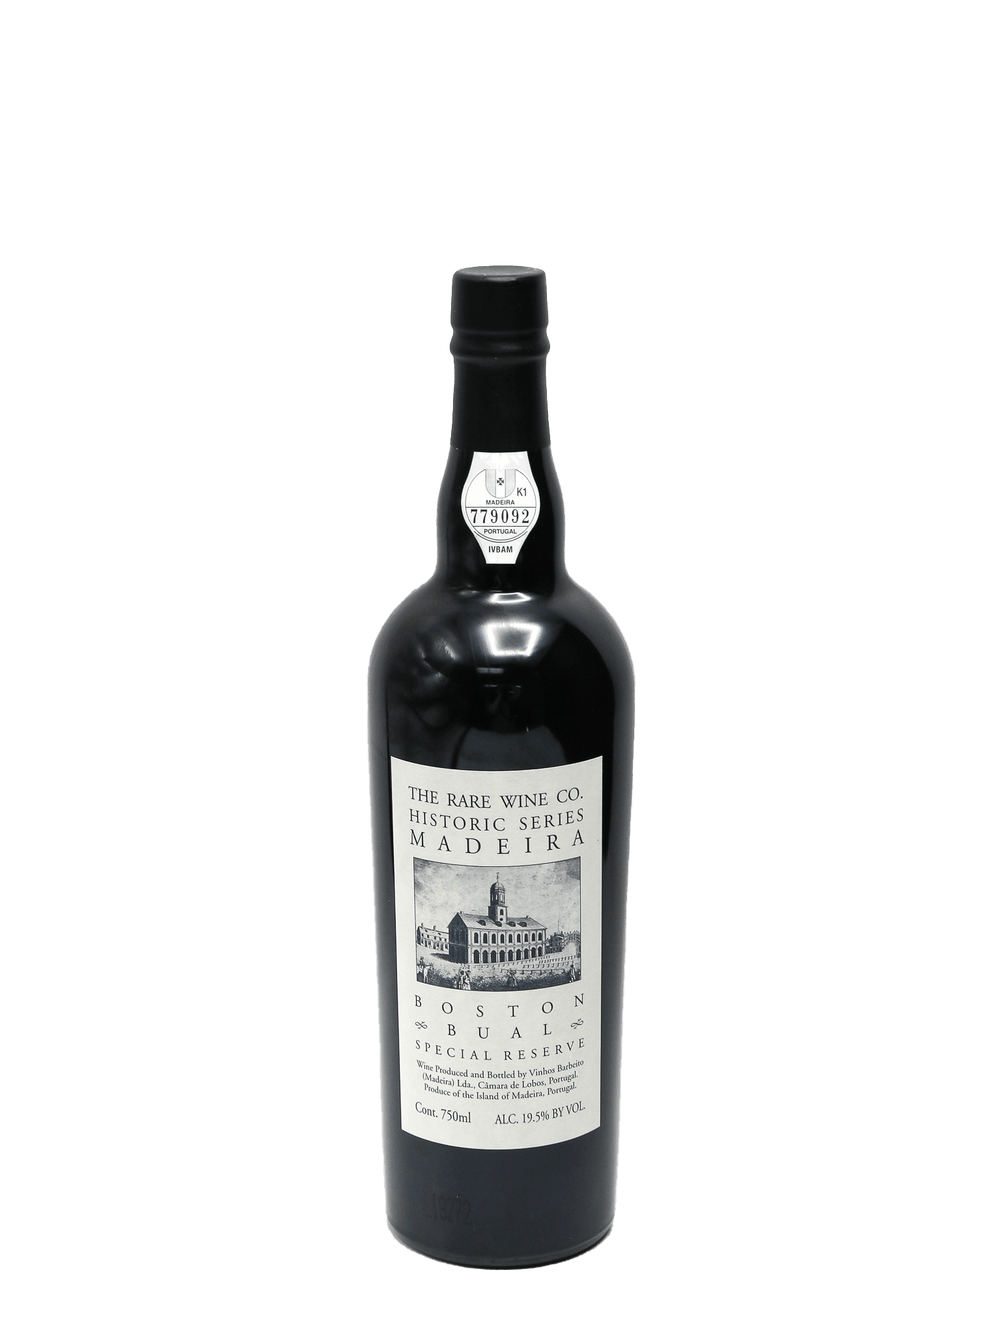 Rare Wine Co. Boston Bual Madeira Special Reserve